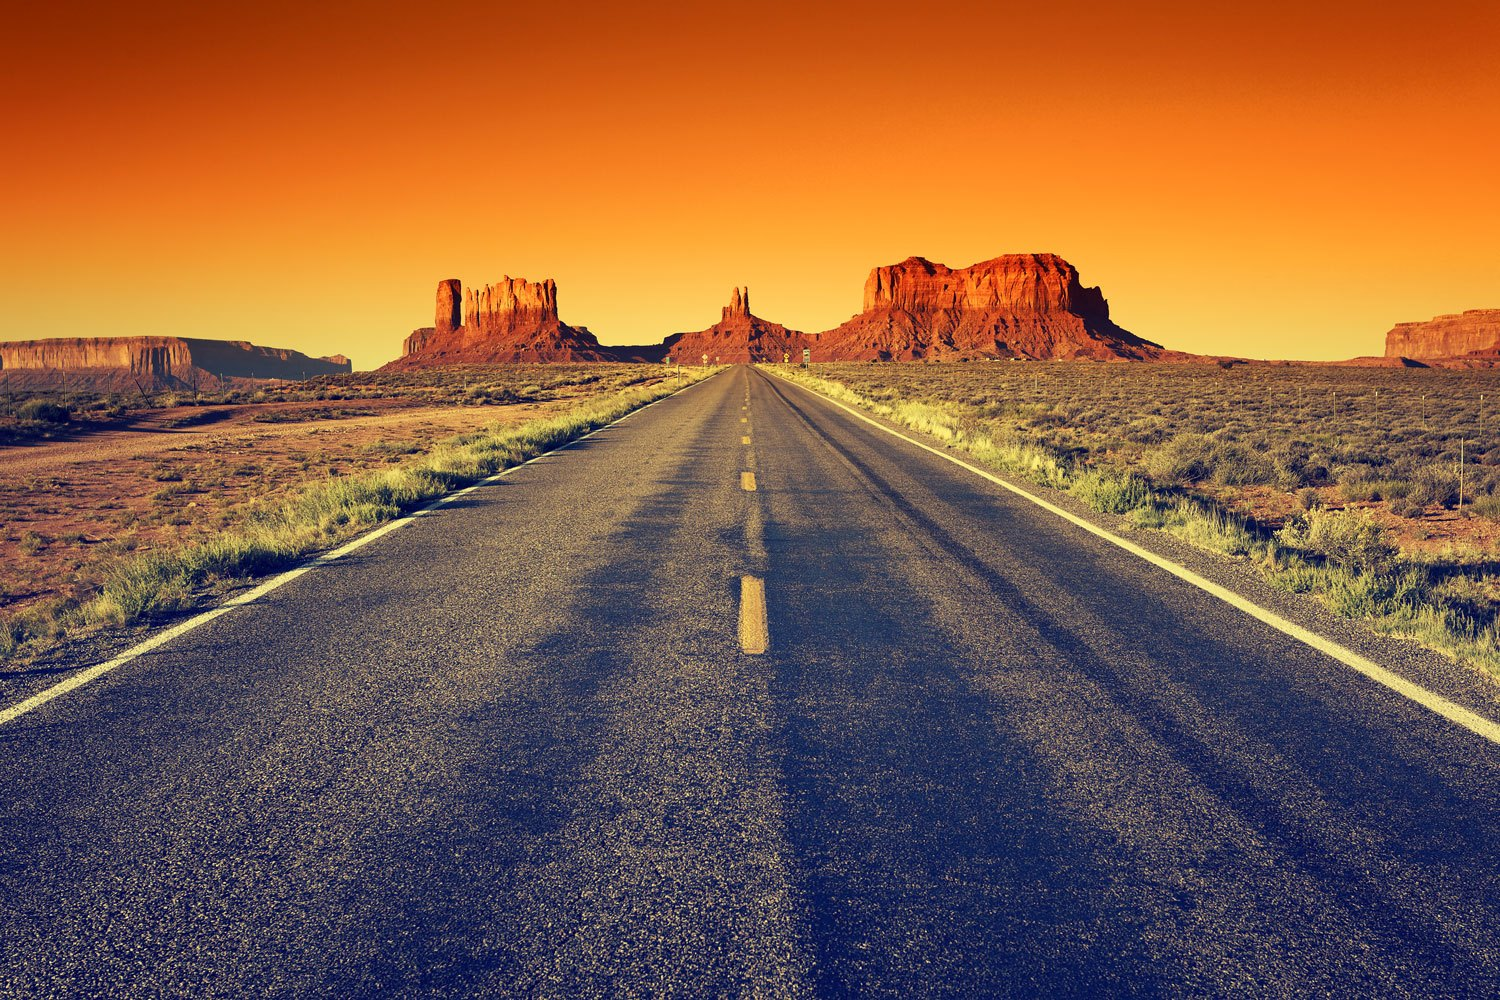 Fotomurali : Percorso Route 66 al Grand Canyon